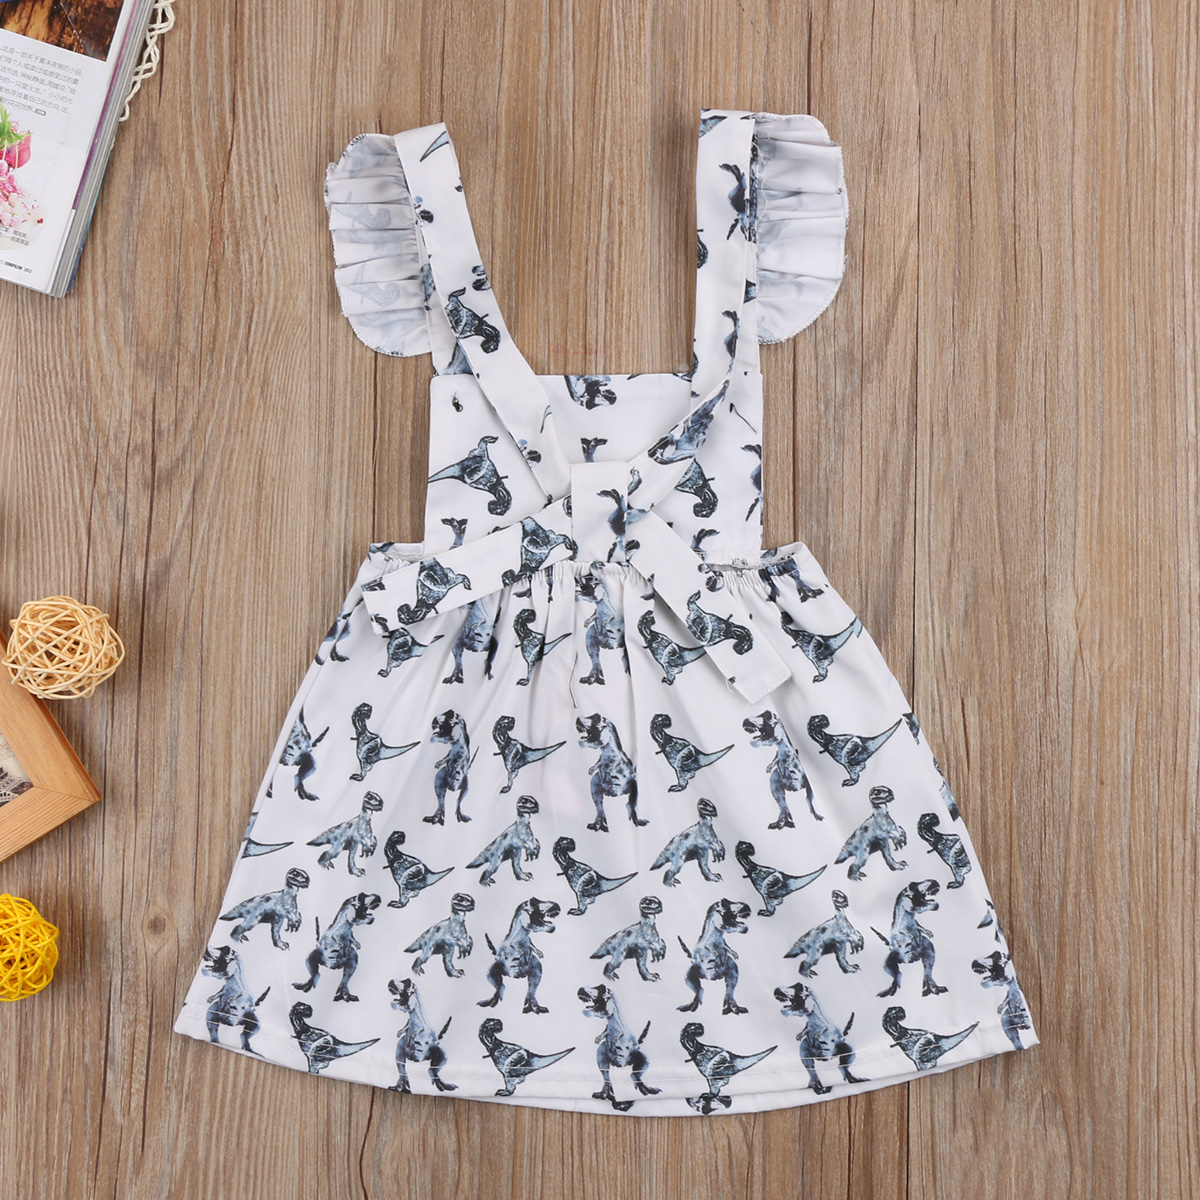 ad98078fce8c 2018 Newborn Baby Girls Dinosaur Sleeveless Dress Clothes Babies Girl  Backless Outfits Sundress Summer Clothing-in Dresses from Mother   Kids on  ...